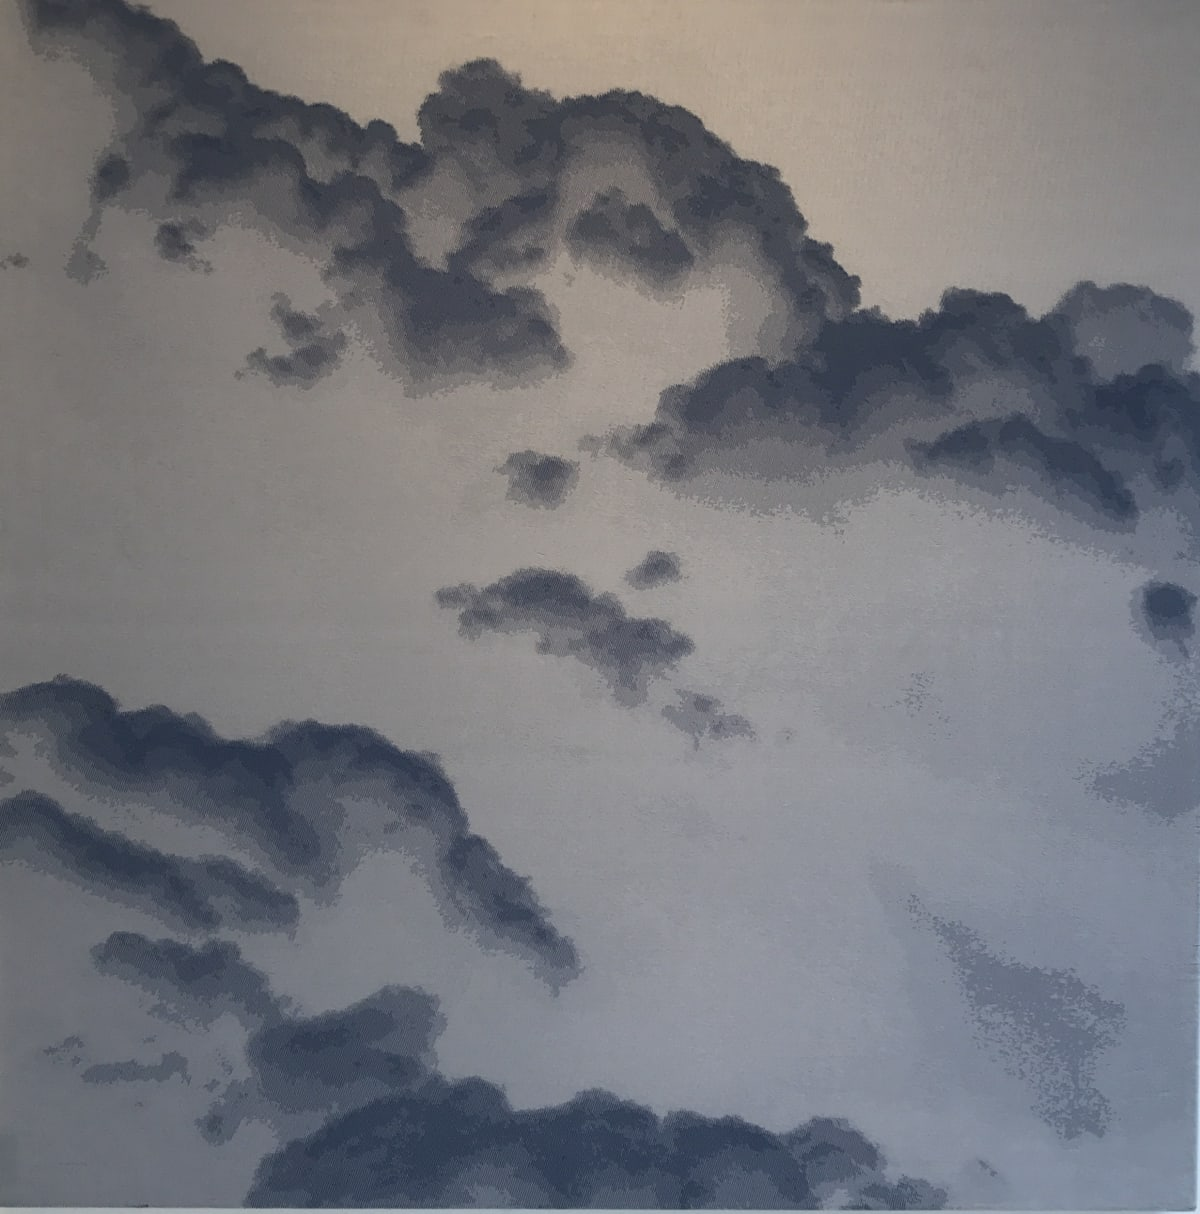 SONJA WEBER Sky Moments 853, 2007 Jacquard fabric 120 x 120 cm 47 1/2 x 47 1/2 in Signed and dated